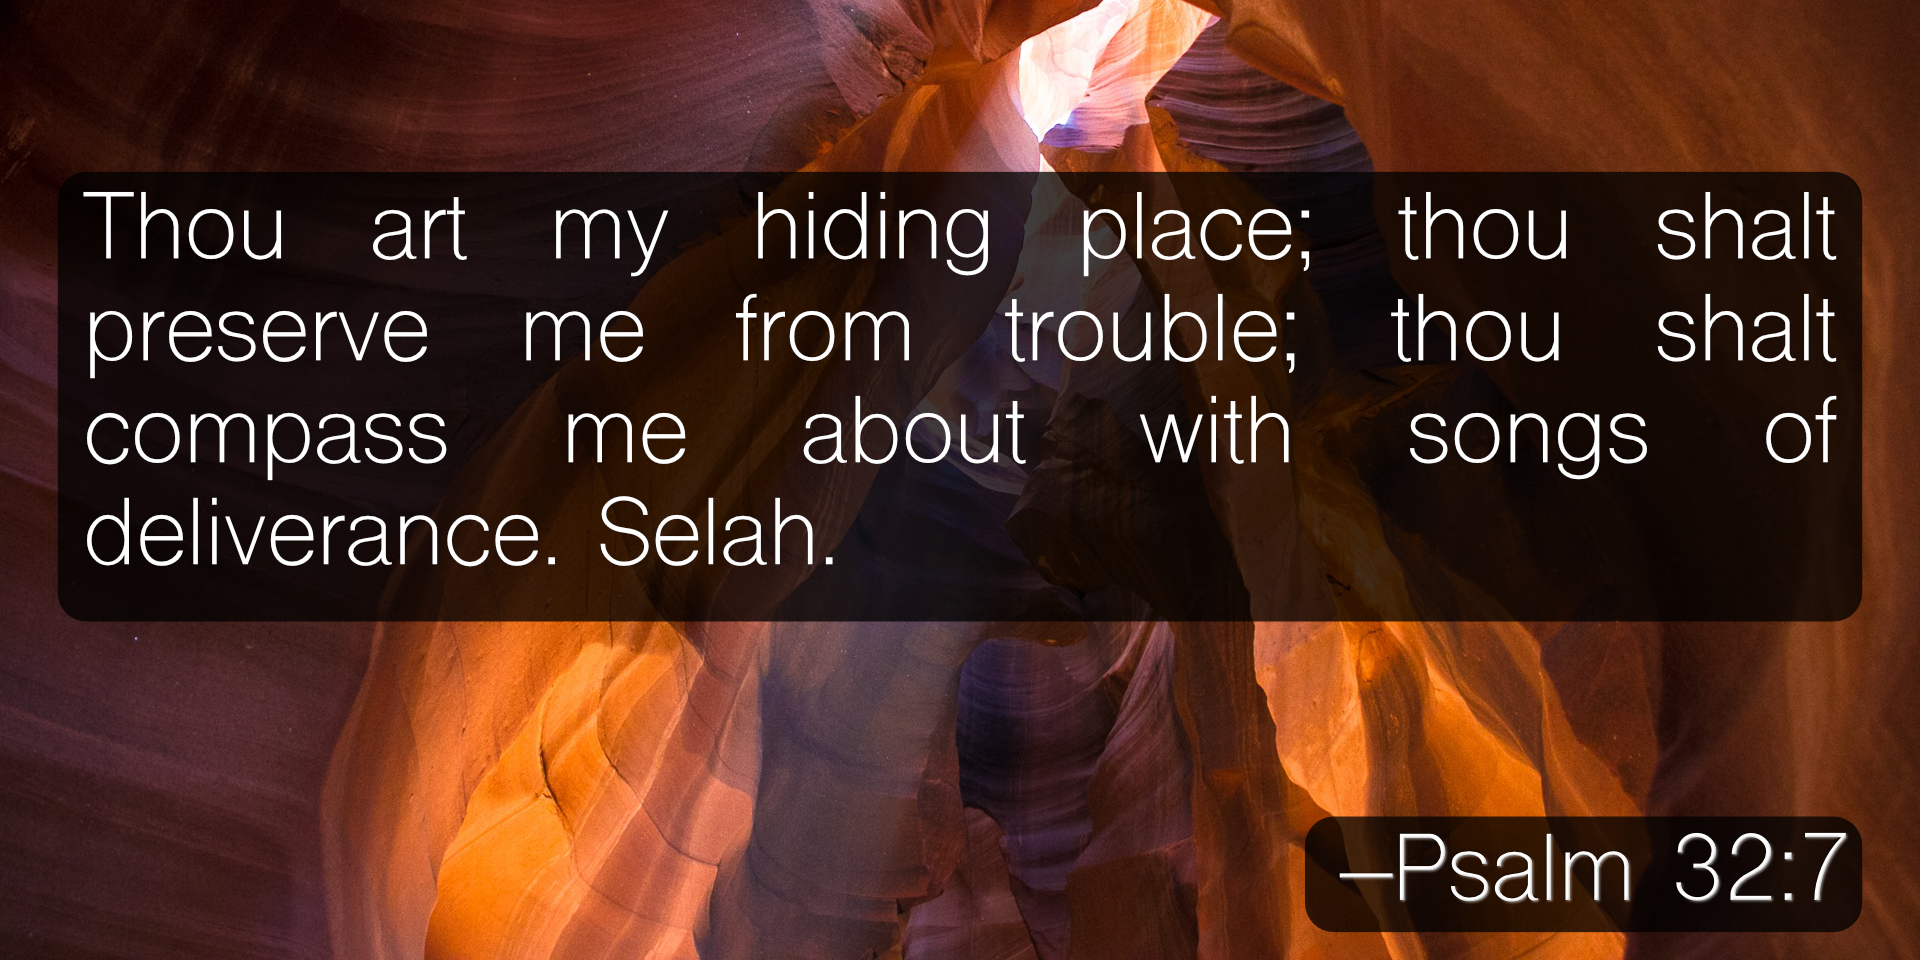 Thou art my hiding place; thou shalt preserve me from trouble; thou shalt compass me about with songs of deliverance. Selah. –Psalm 32:7